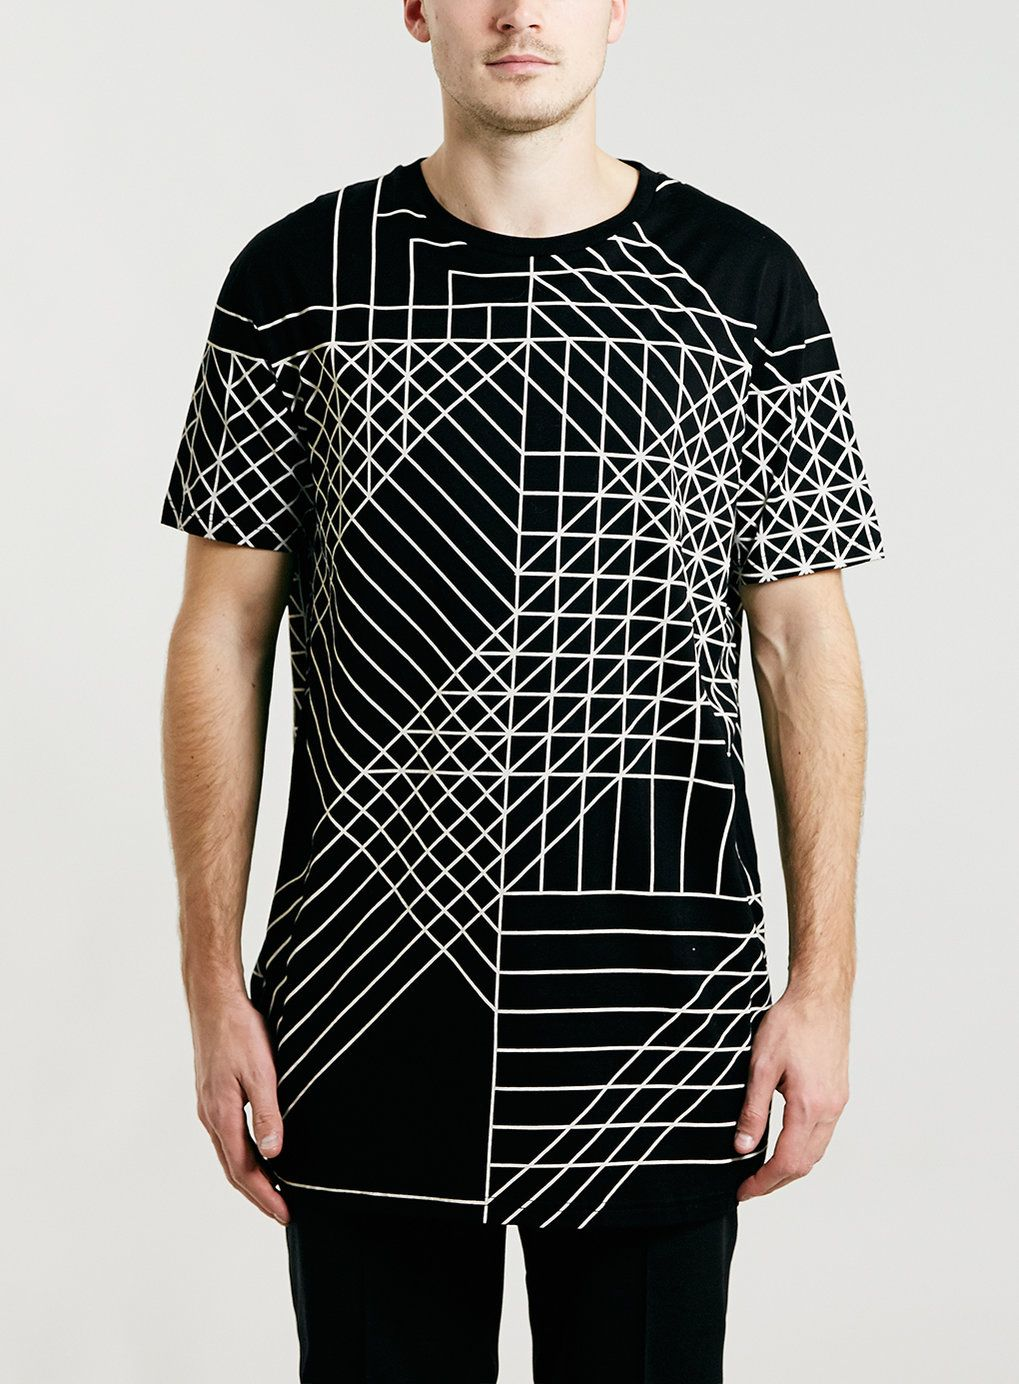 LUX BLACK GEO PRINT LONGER LENGTH T-SHIRT - Print & Patterned T ...